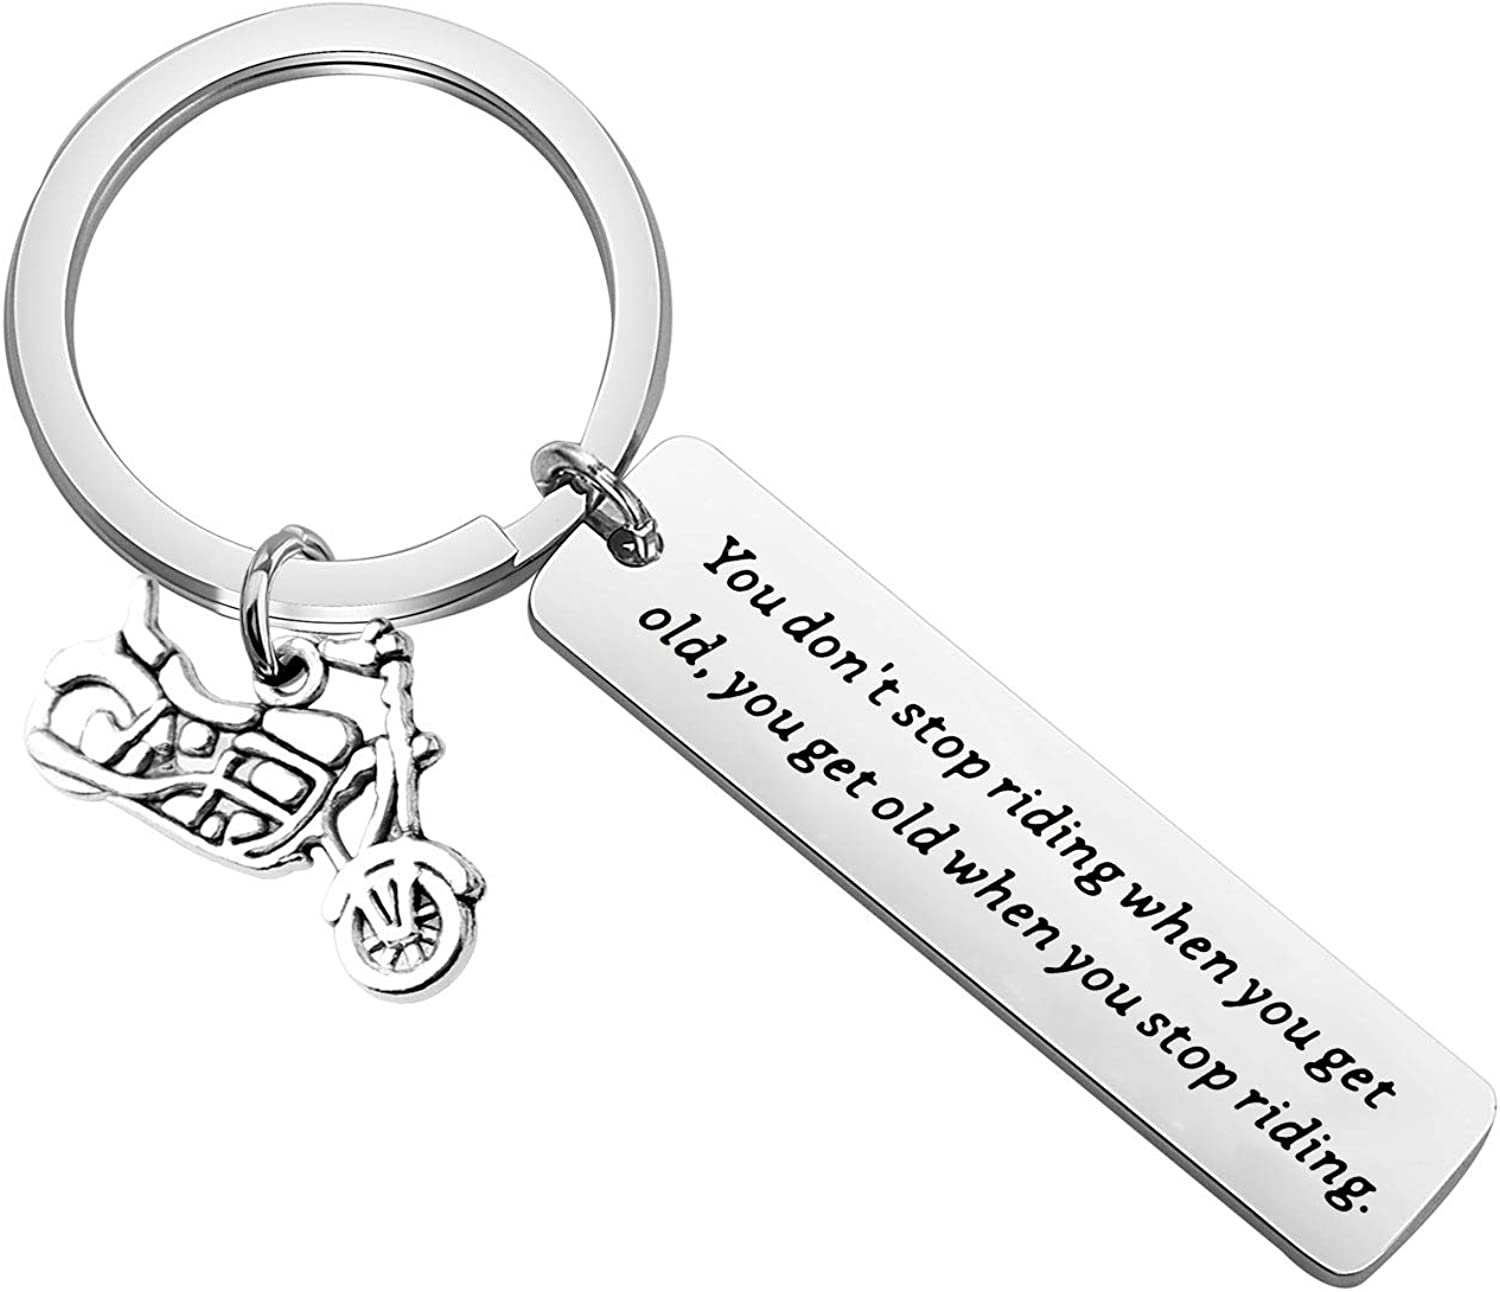 Just Lean It Scooter UTV KEYTAILS Keychains Premium Quality Key Tag for Motorcycle ATV